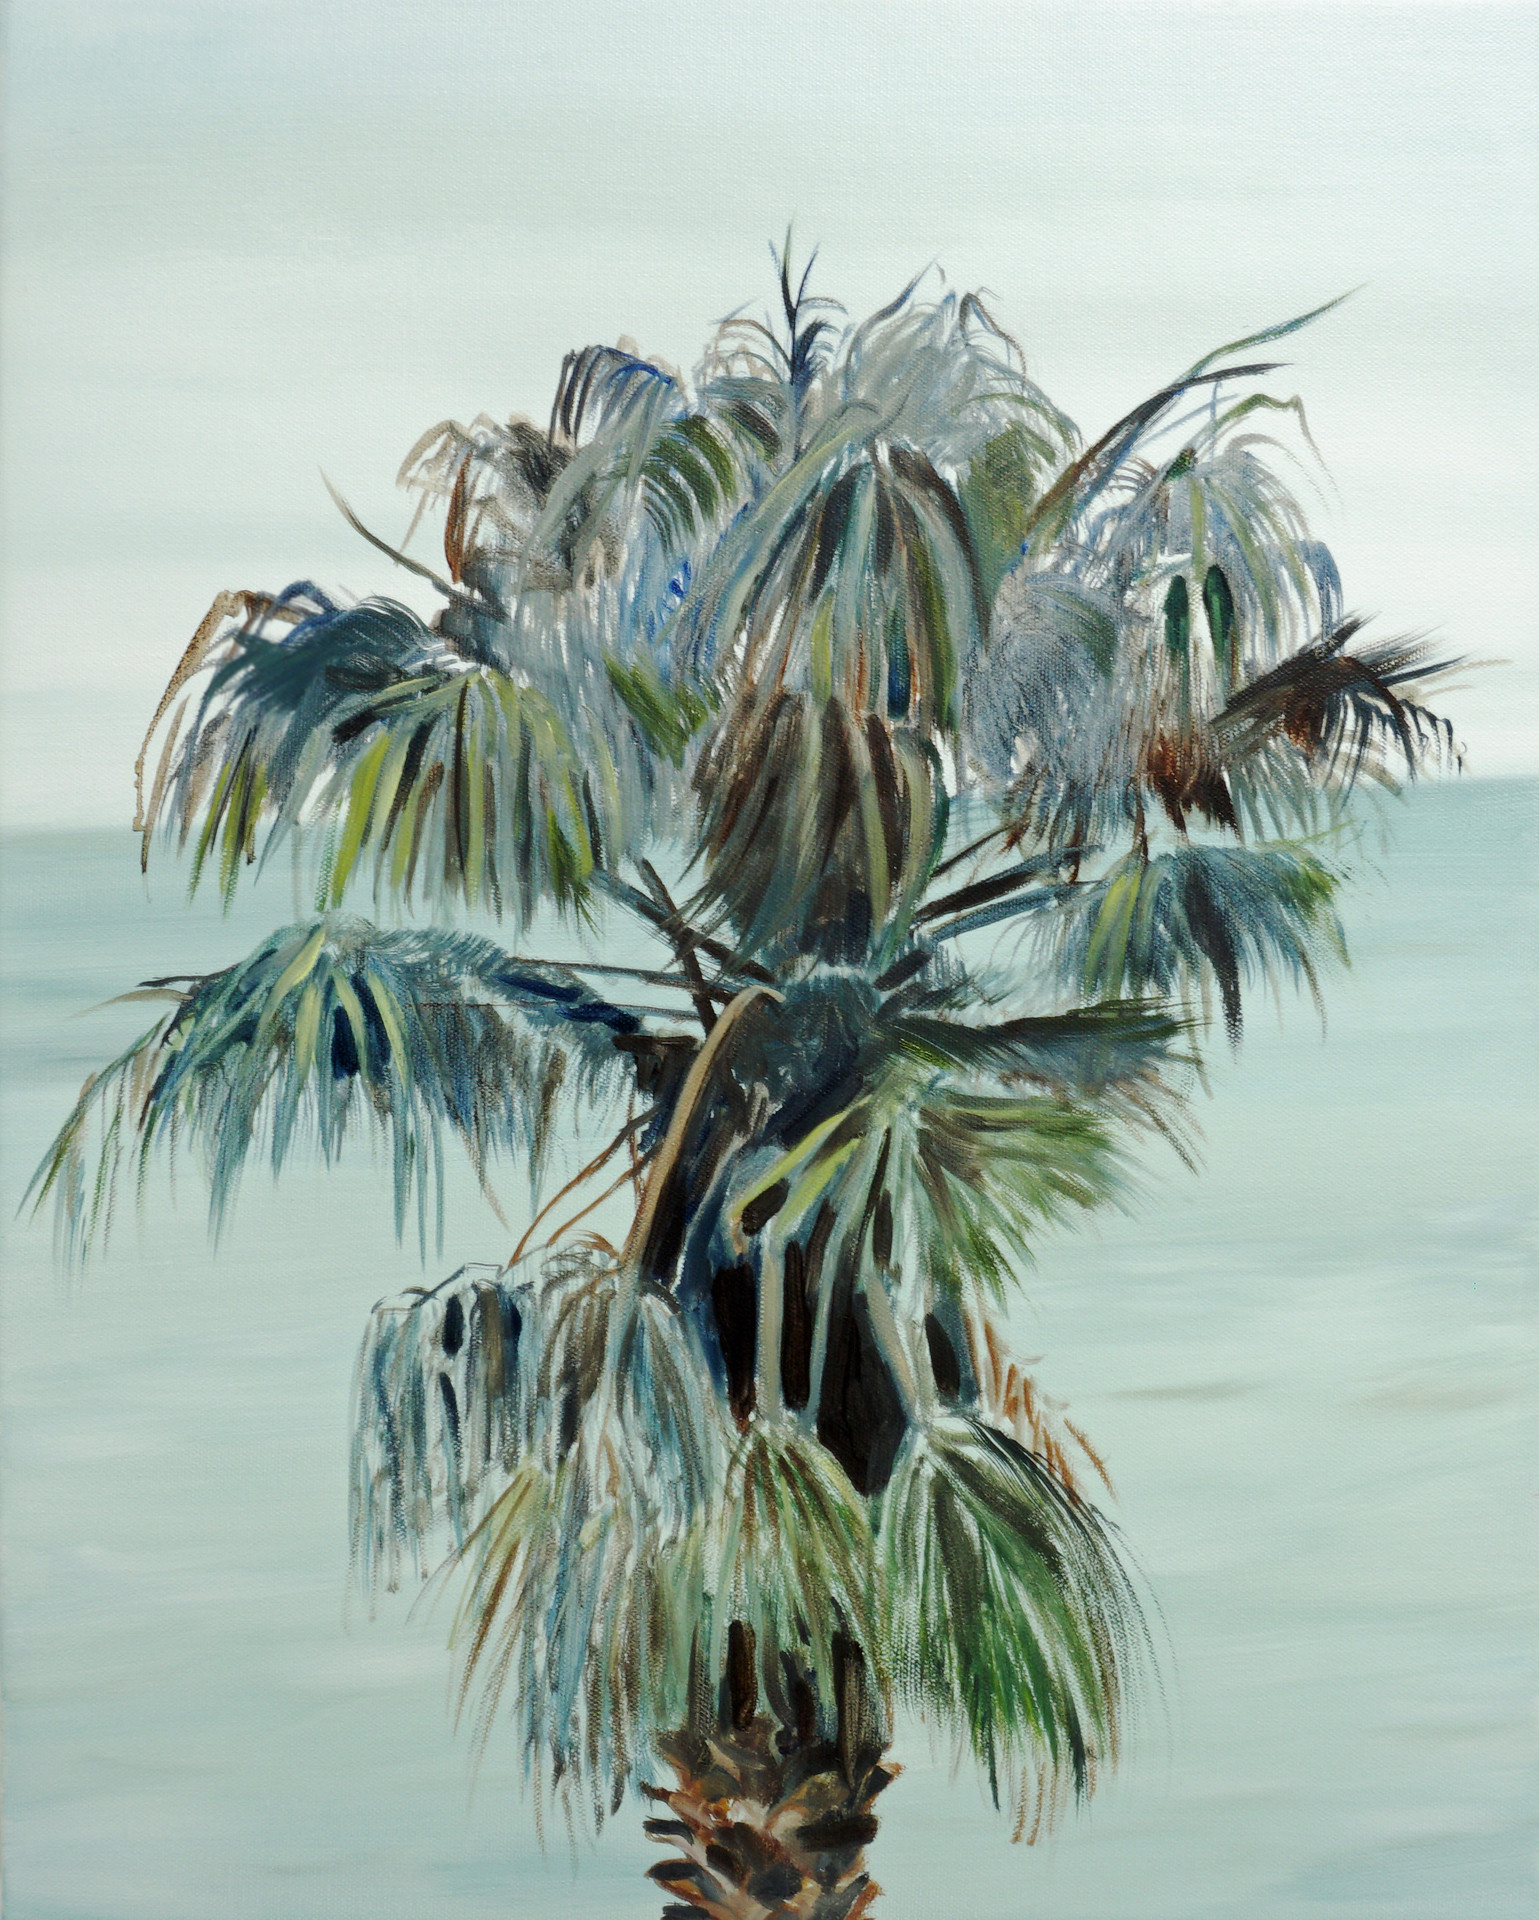 Cape Palm, oil paint on canvas, 20 x 16 inches, 2021